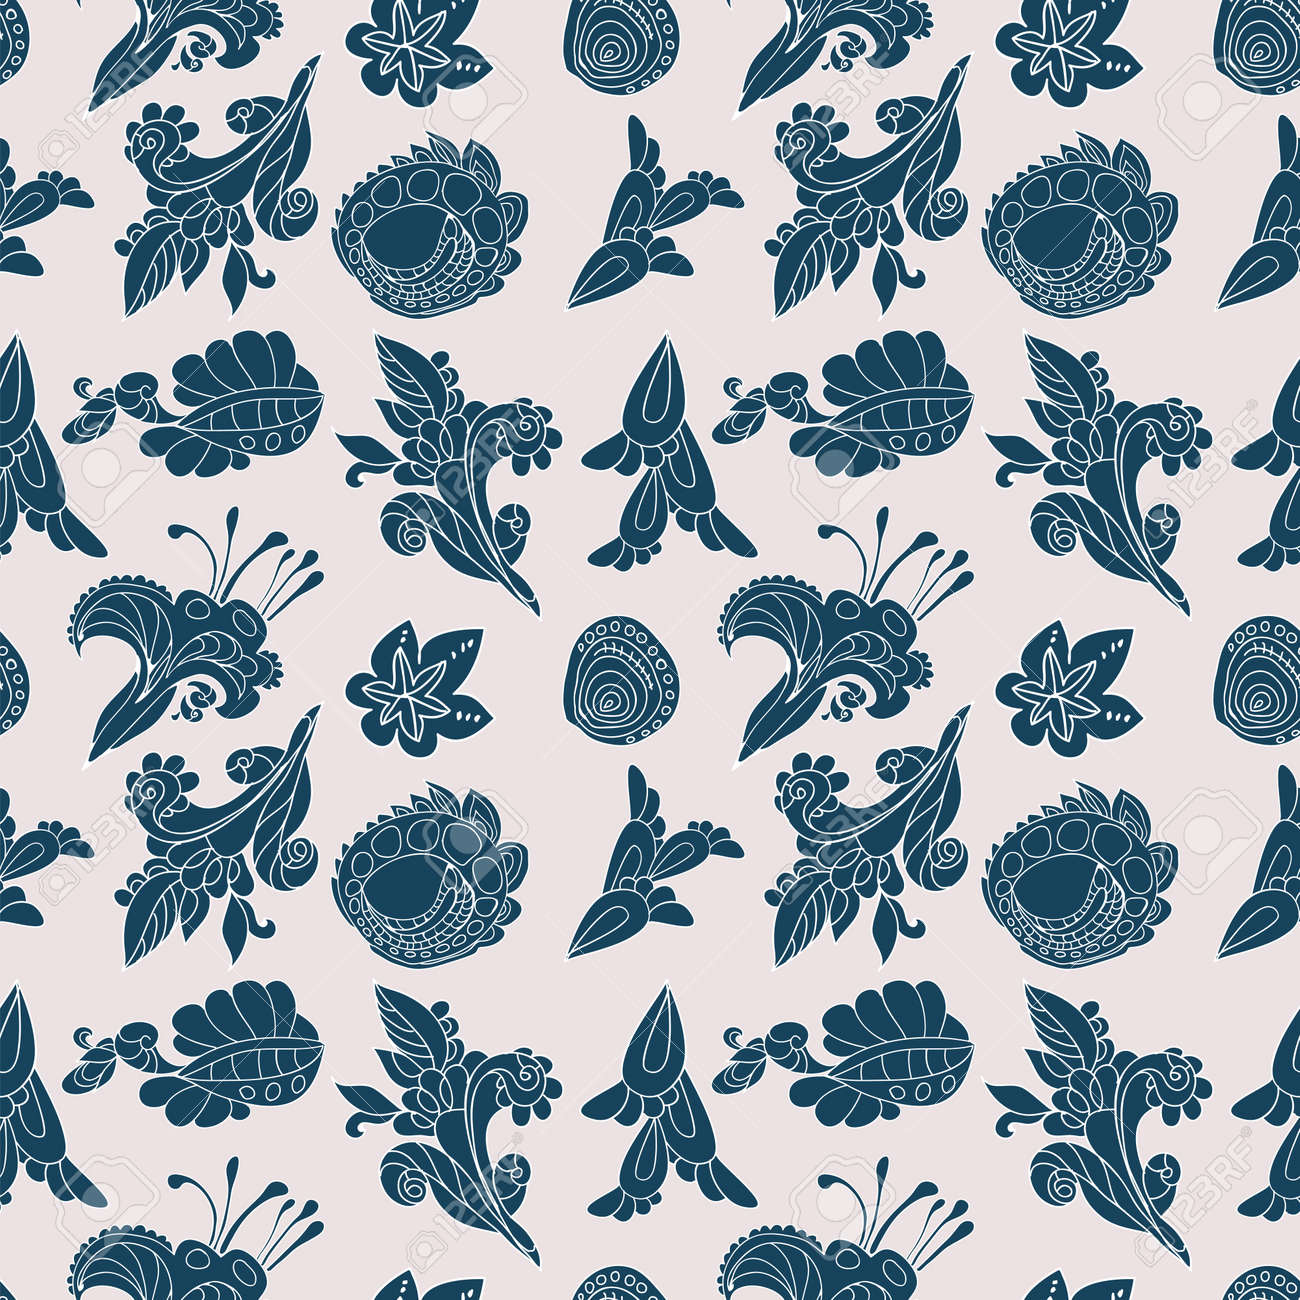 Vintage  white and blue floral seamless pattern with doodle flowers and plants Stock Vector - 18490527